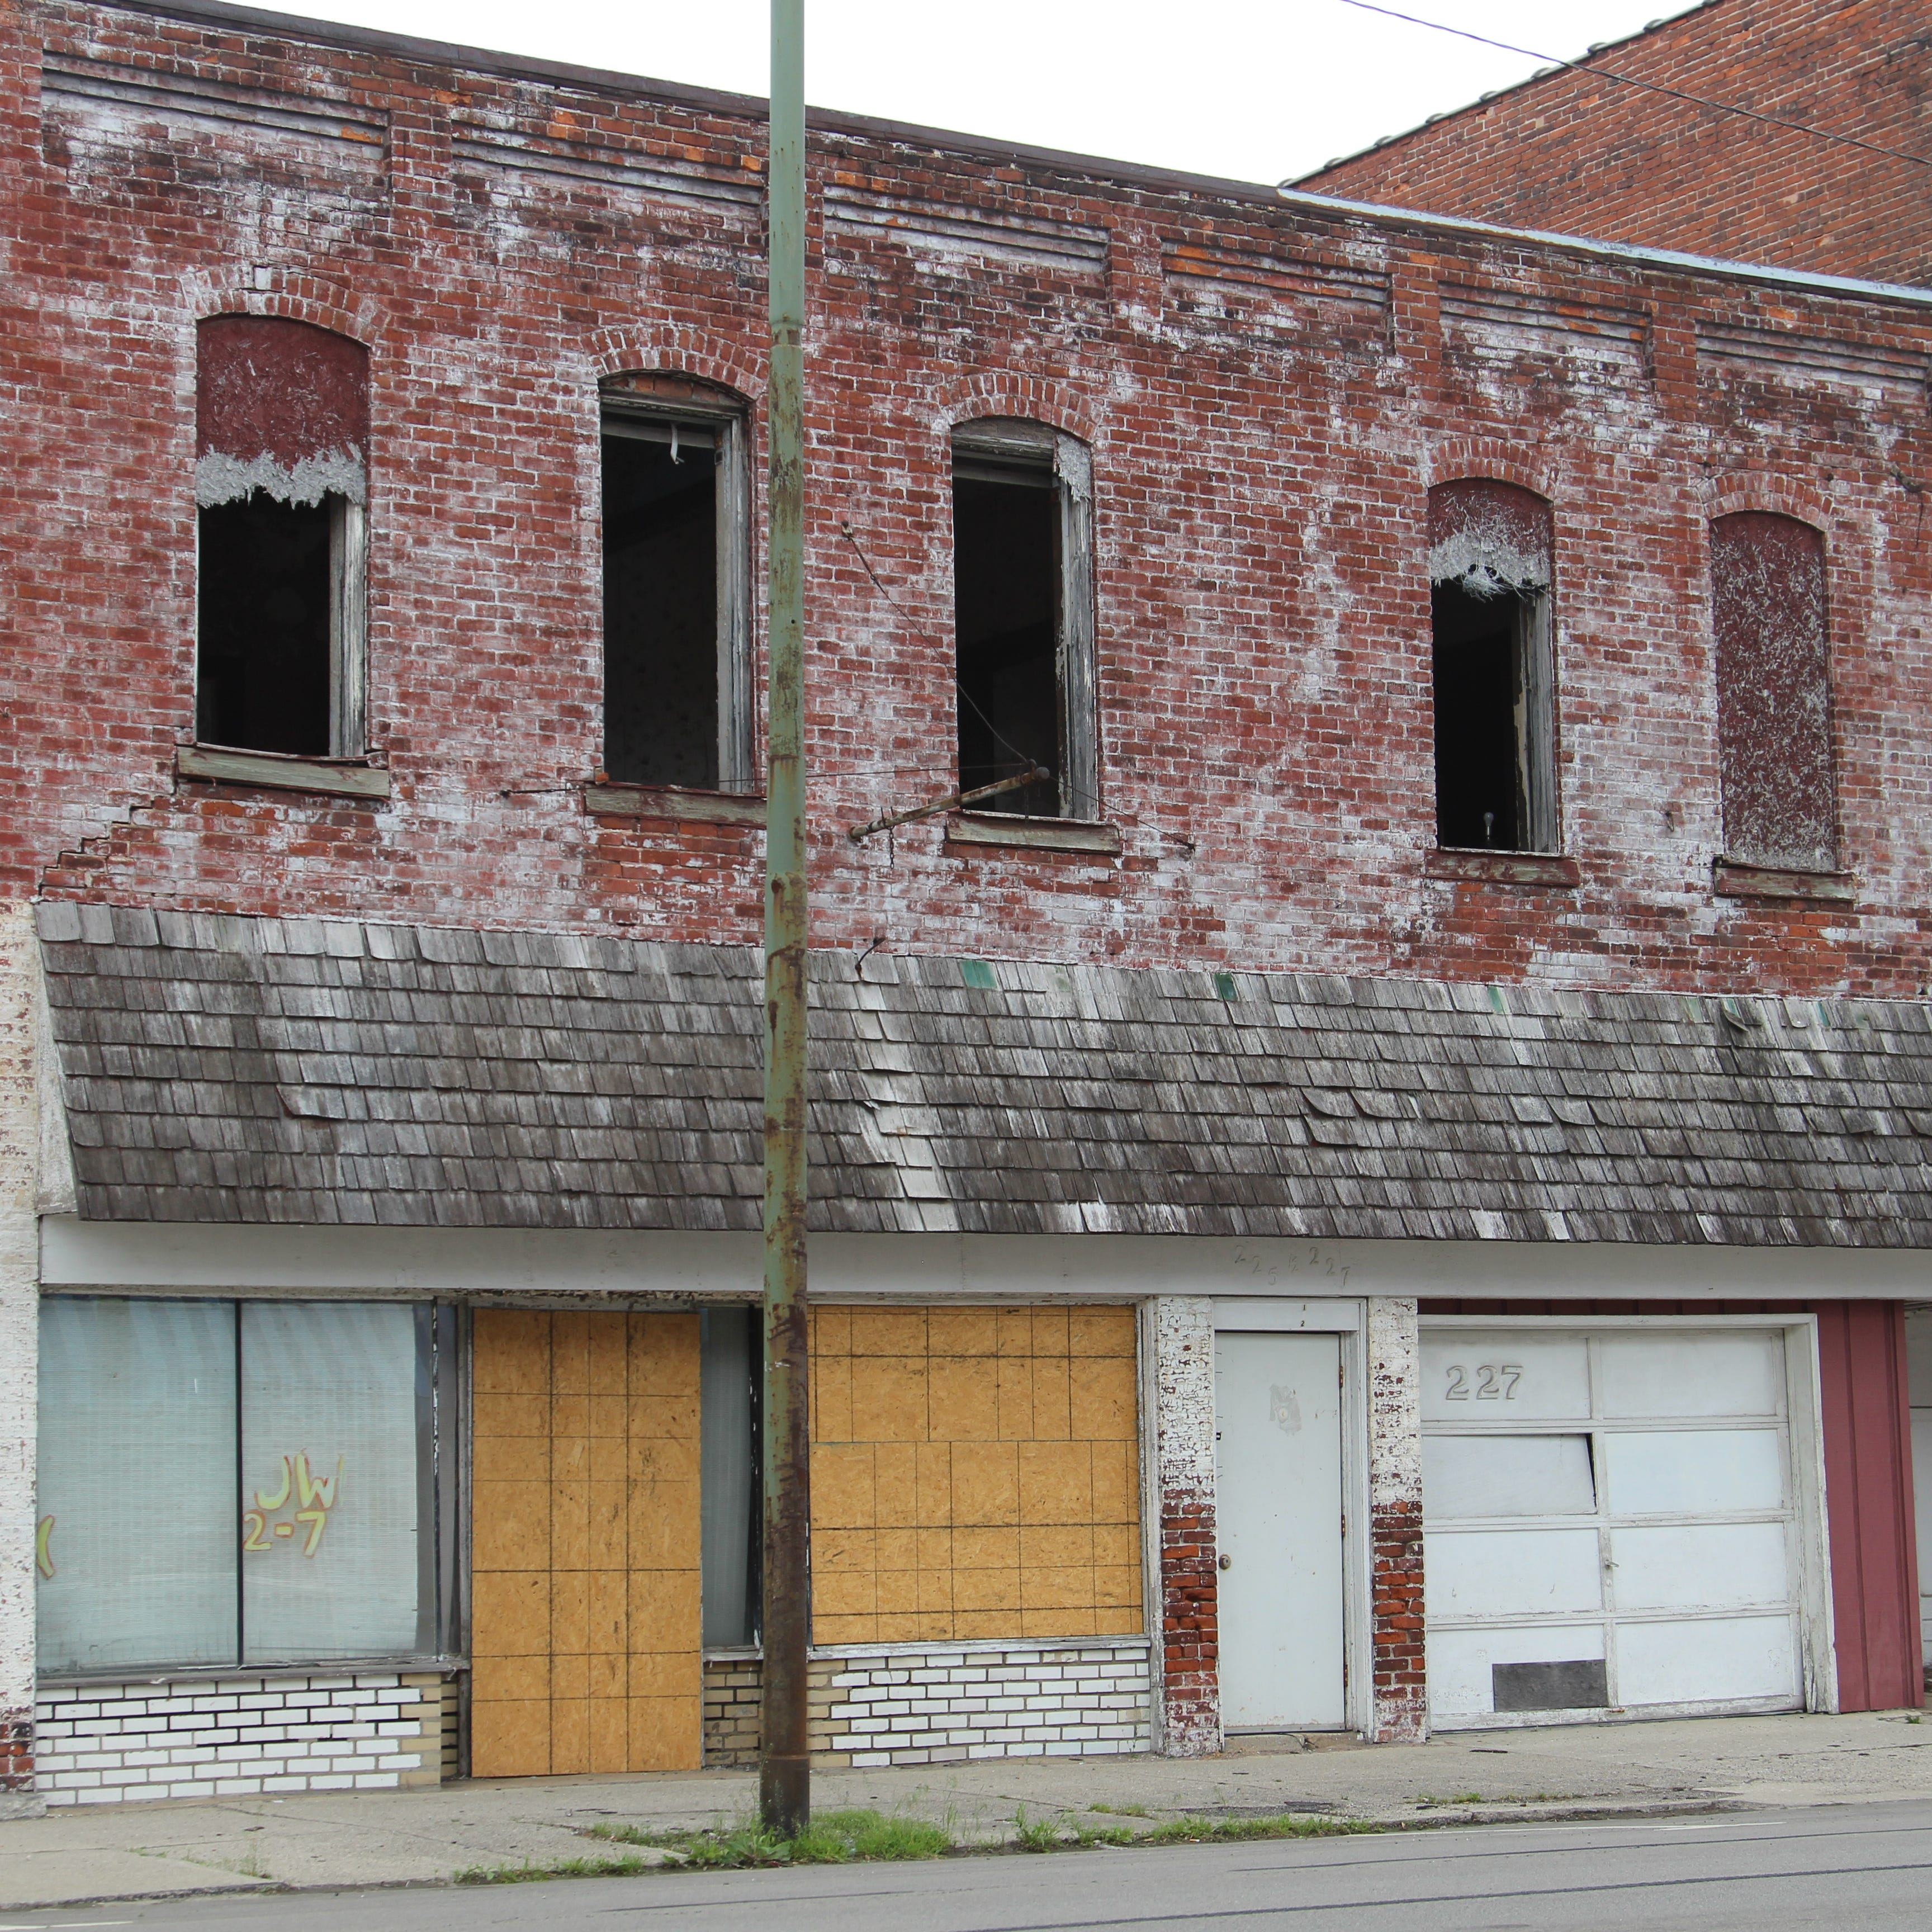 Marion plans to raze decaying North Main Street building with grant